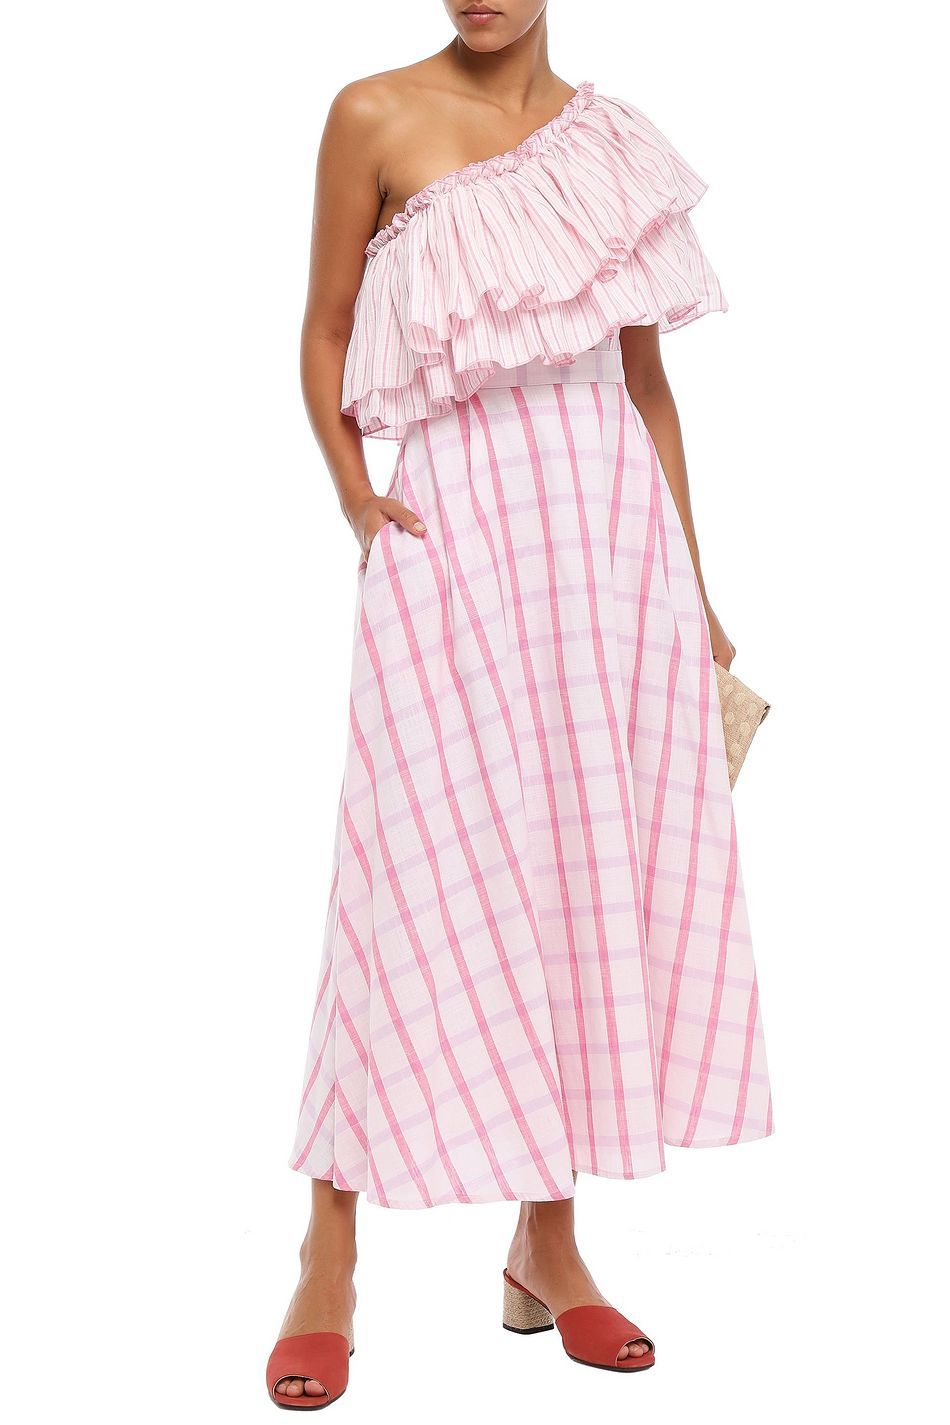 Baby Pink One Shoulder Ruffled Striped Cotton Gauze Midi Dress Sale Up To 70 Off The Outnet Gul Hurgel Midi Dress Sale Designer Maxi Dress Dresses [ 1425 x 950 Pixel ]